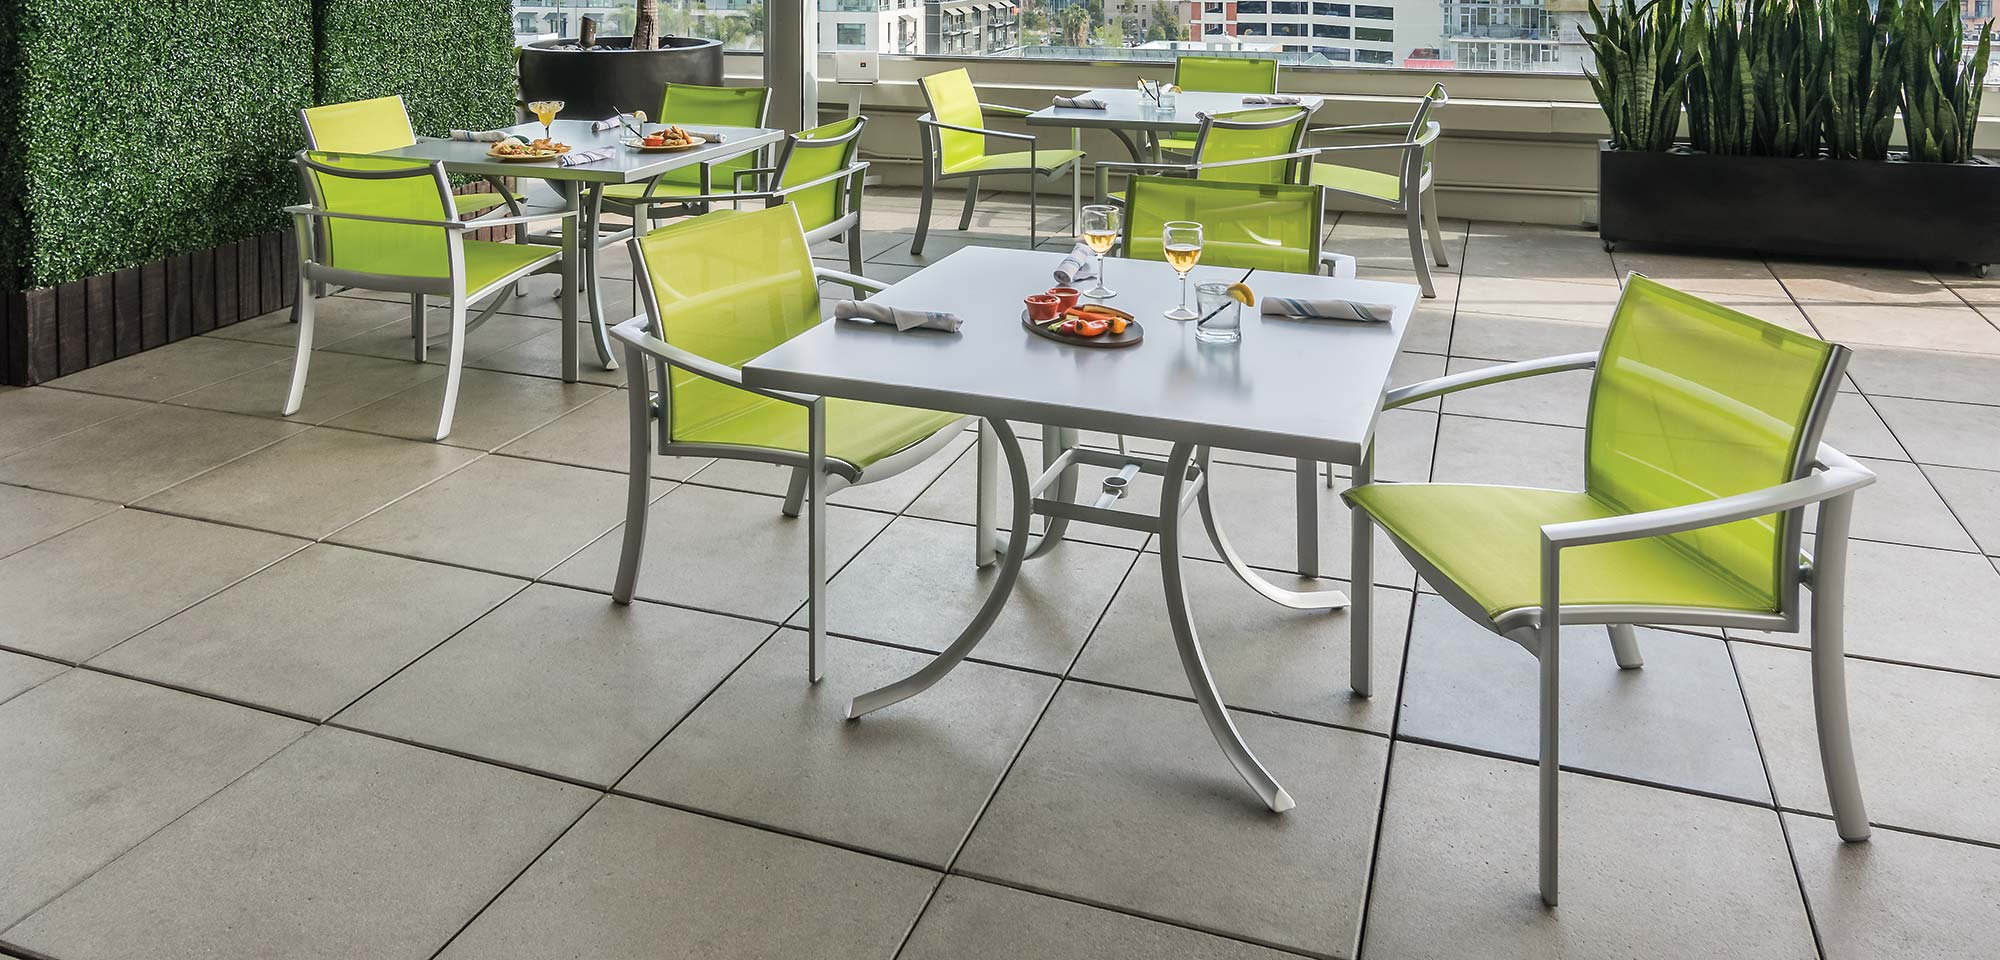 patio categories en depot outdoors the table canada tables home furniture outdoor